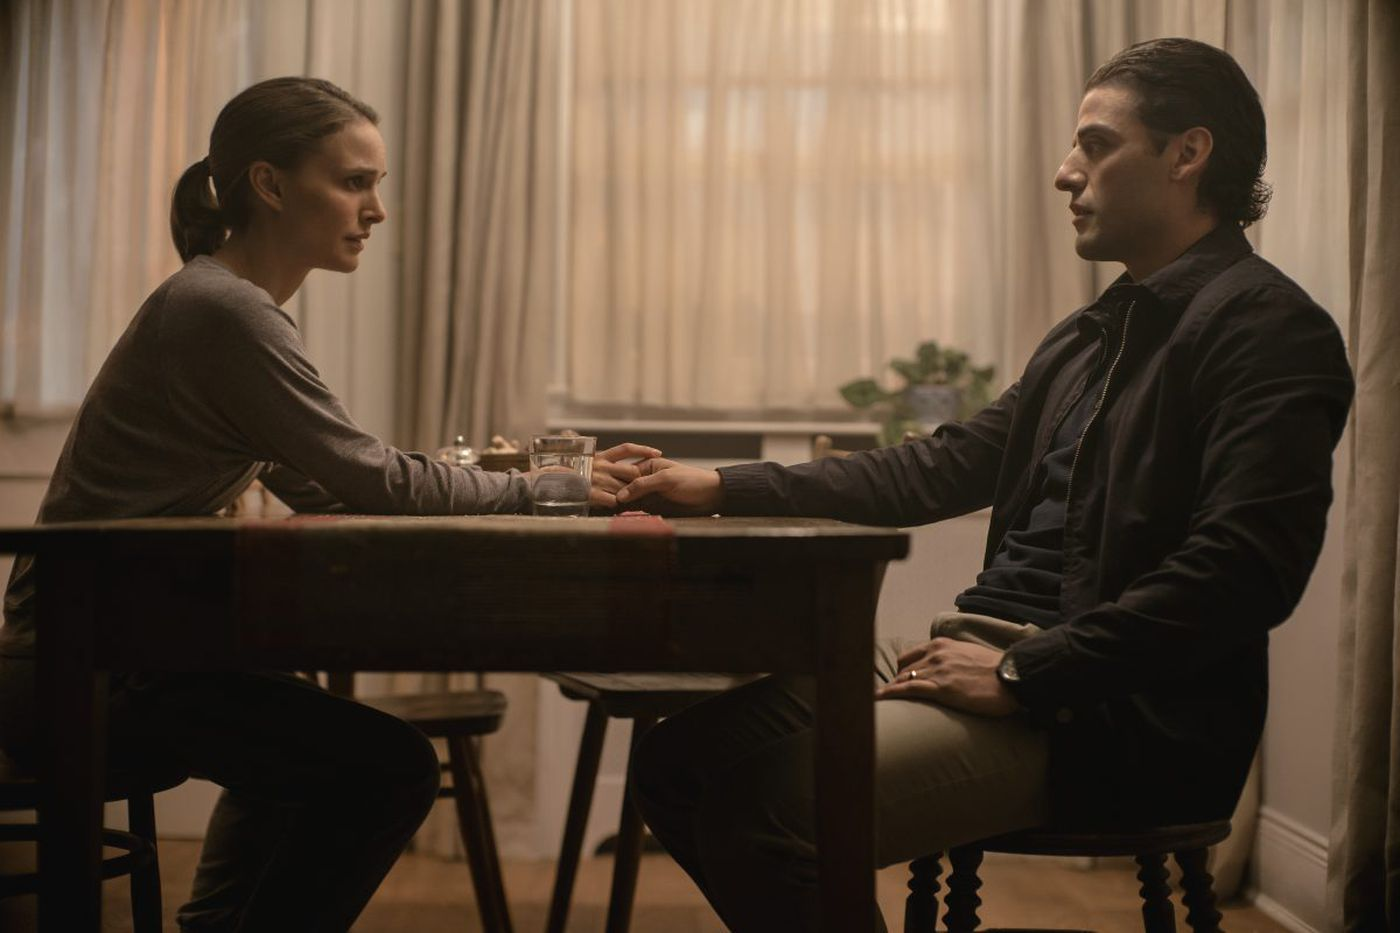 'Annihilation': An alien invasion movie that may grow on you